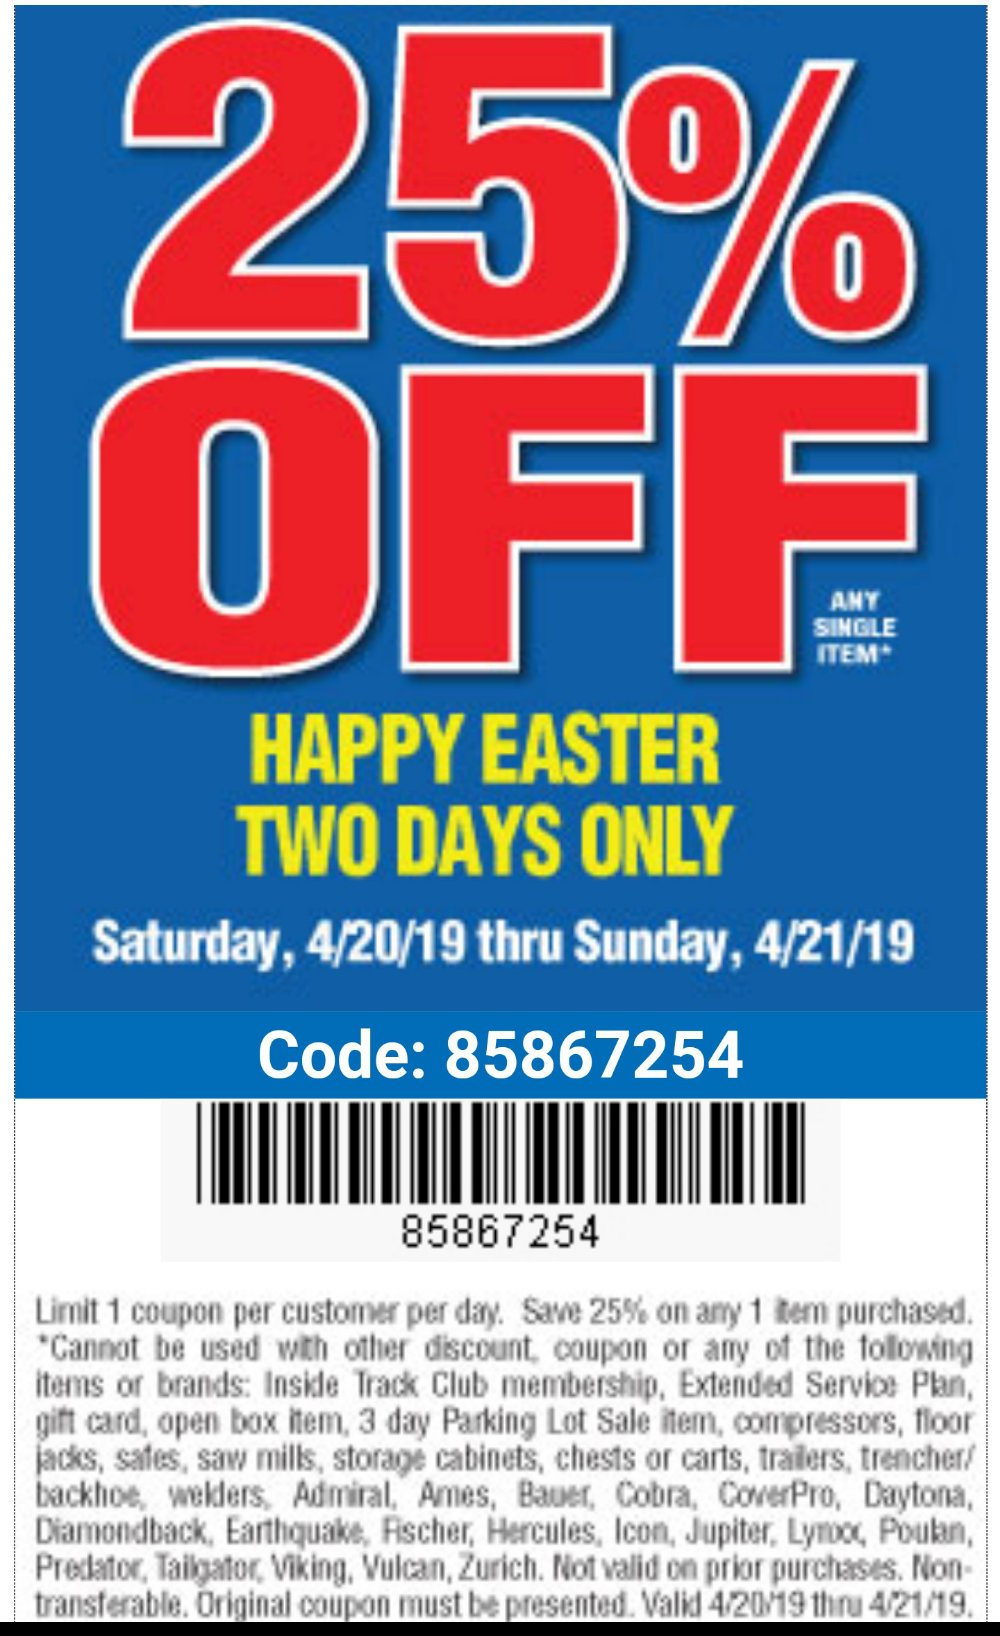 Harbor Freight Coupon, HF Coupons - happy easter 25 percent off